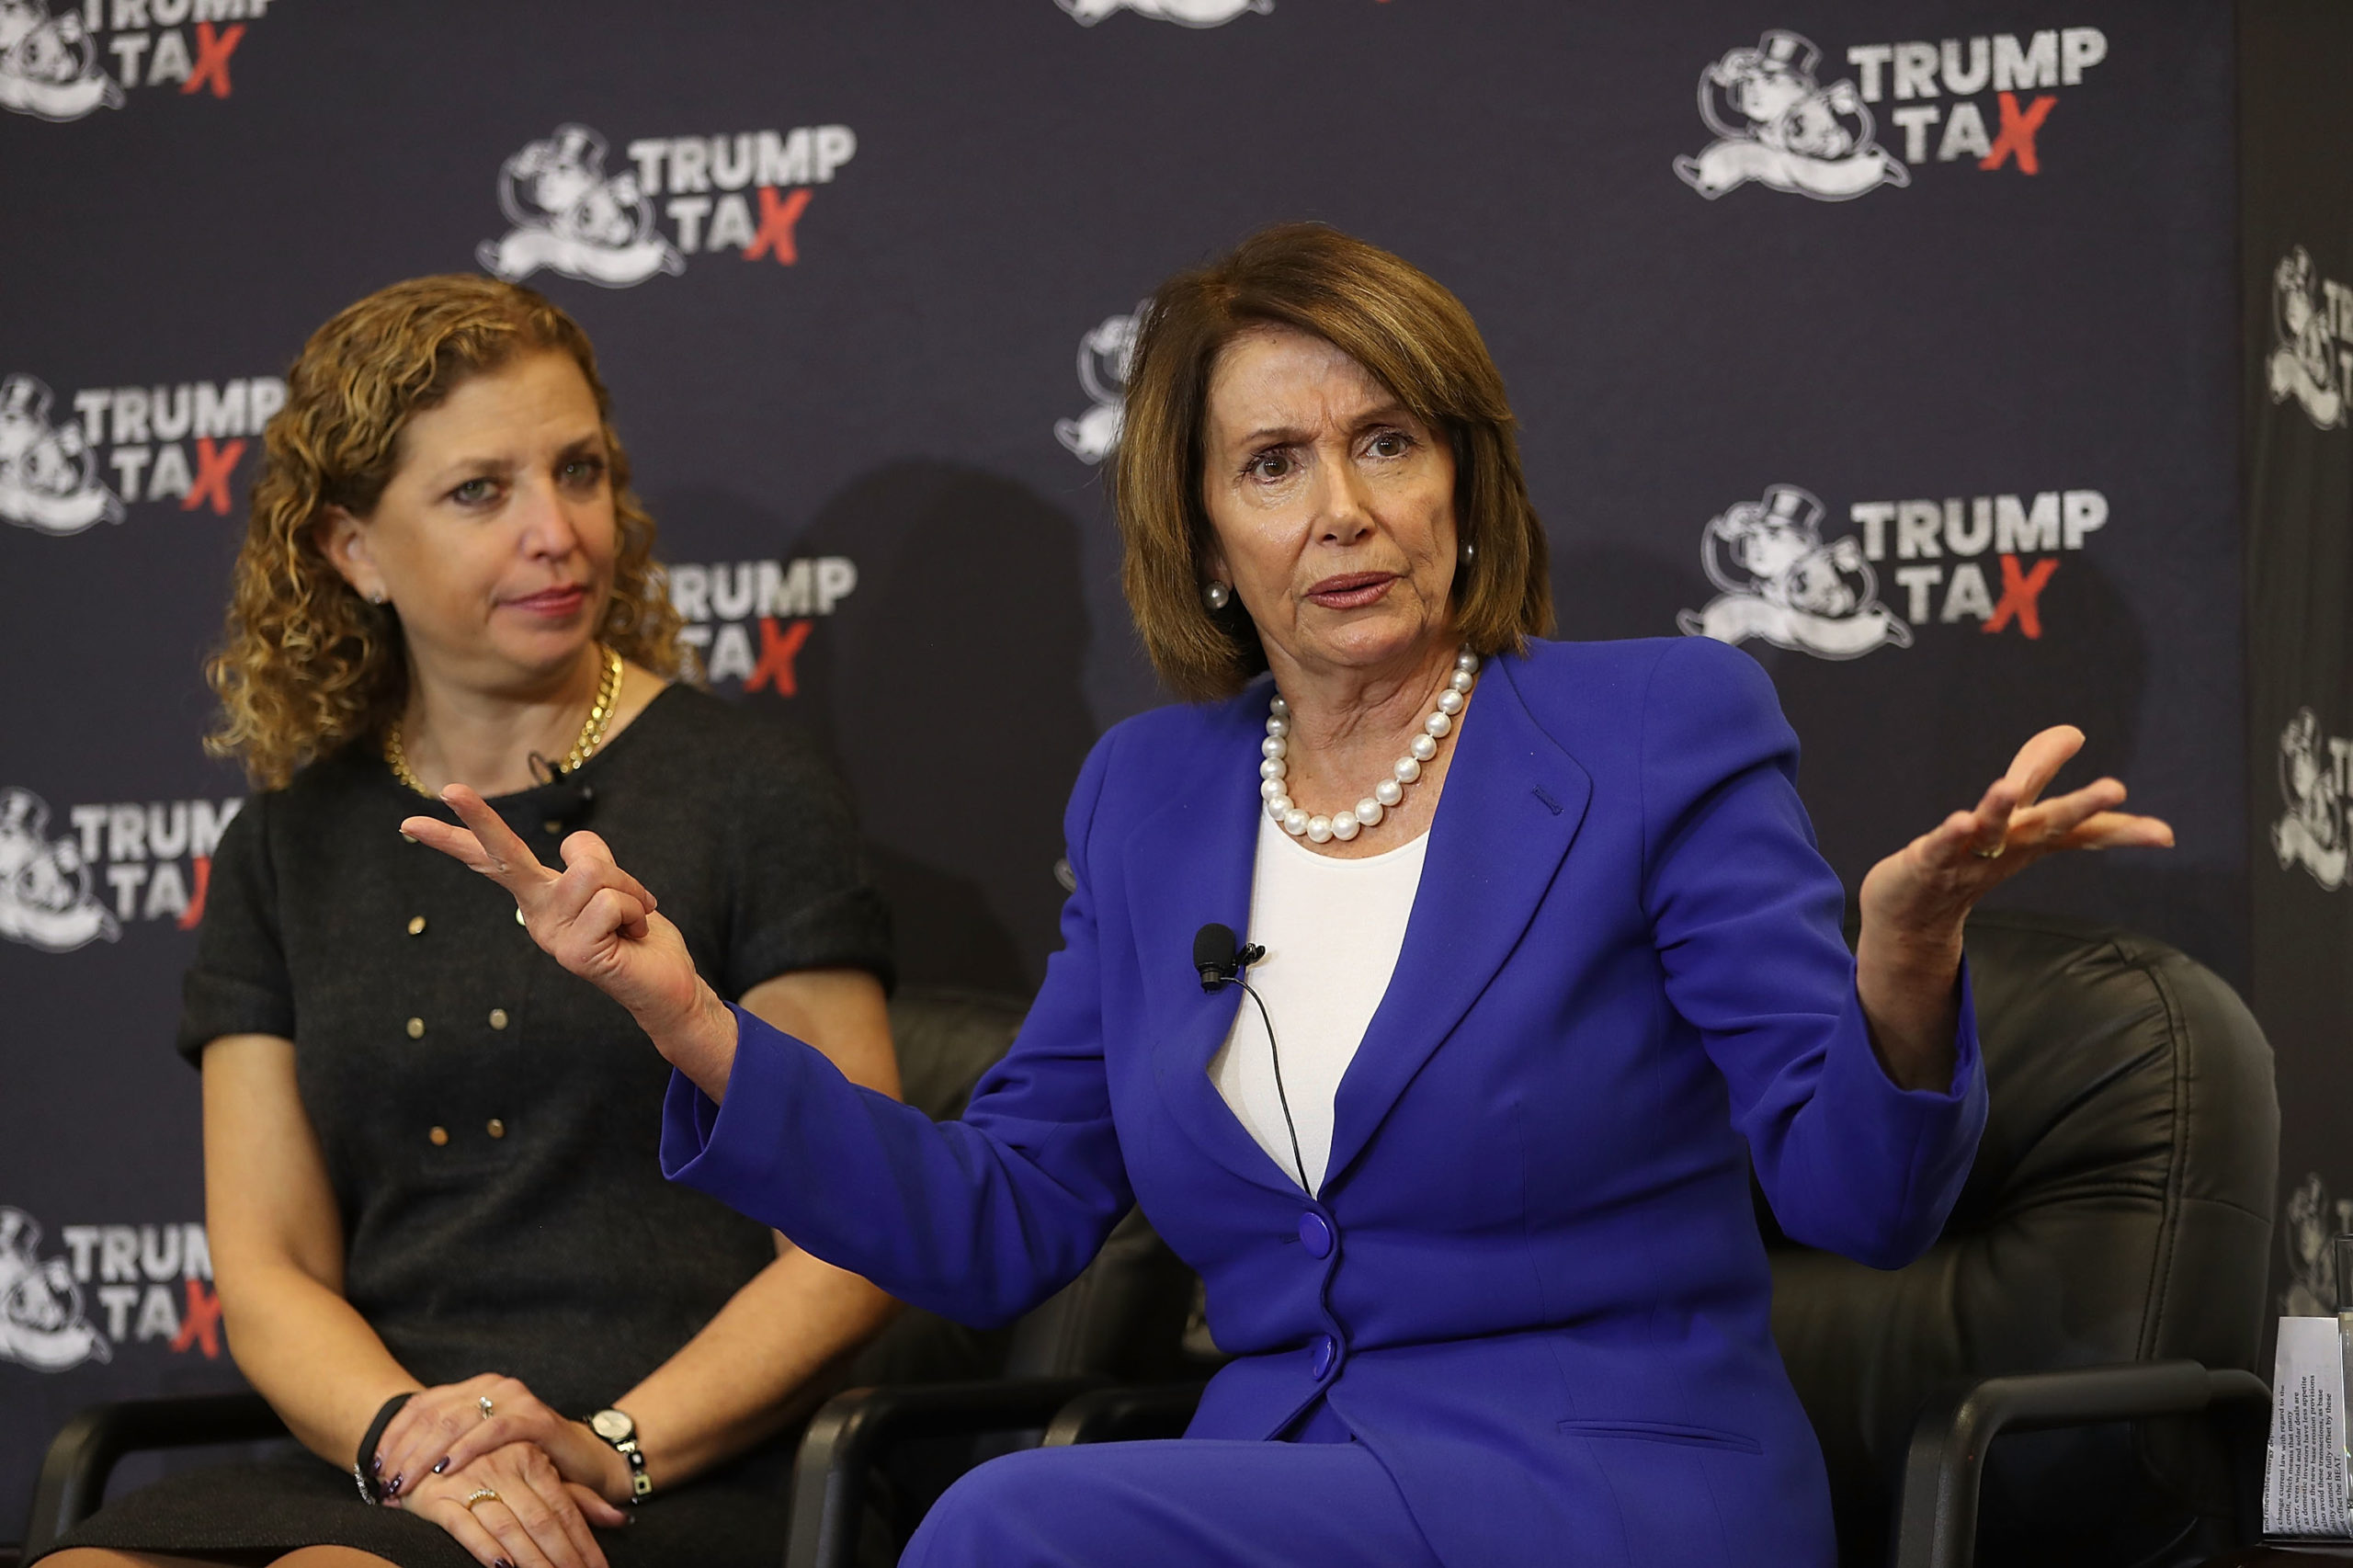 BOCA RATON, FL - JANUARY 25: Rep. Debbie Wasserman Schultz (D-FL) and House Minority Leader Nancy Pelosi (D-CA) (L-R) participate in a tax town hall discussion at Florida Atlantic University on January 25, 2018 in Boca Raton, Florida. (Photo by Joe Raedle/Getty Images)